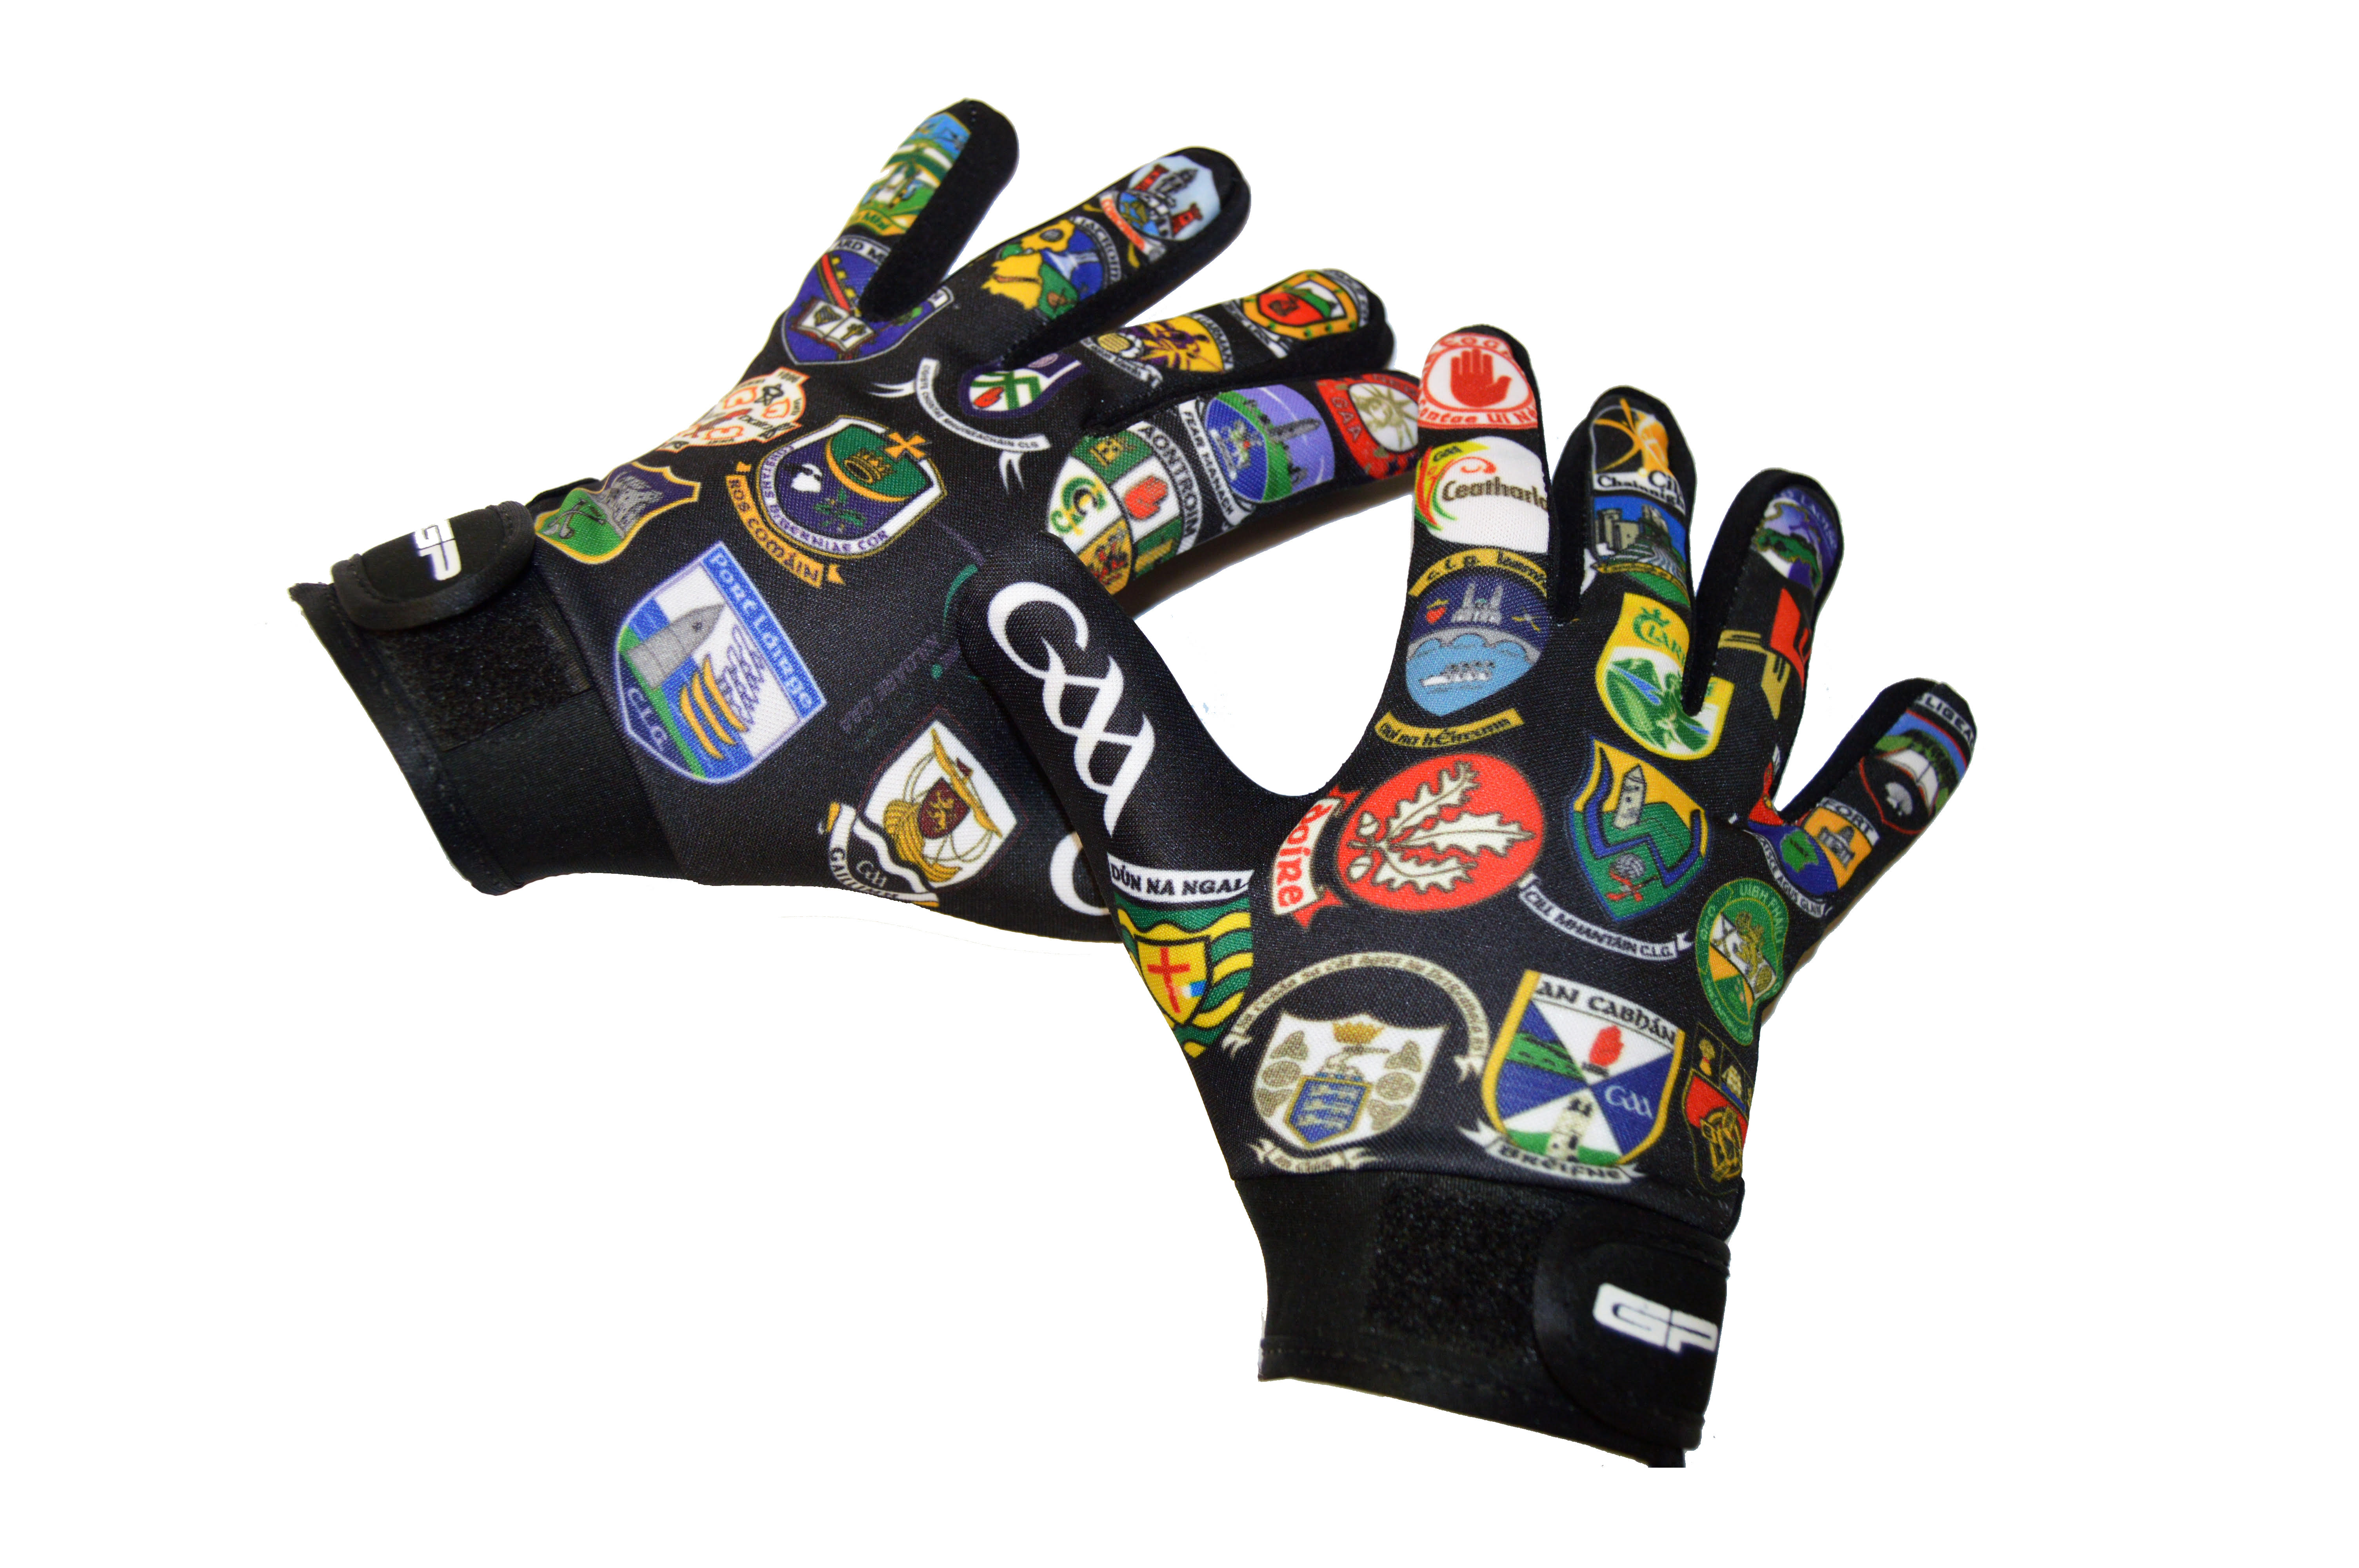 gaa-gloves.jpg